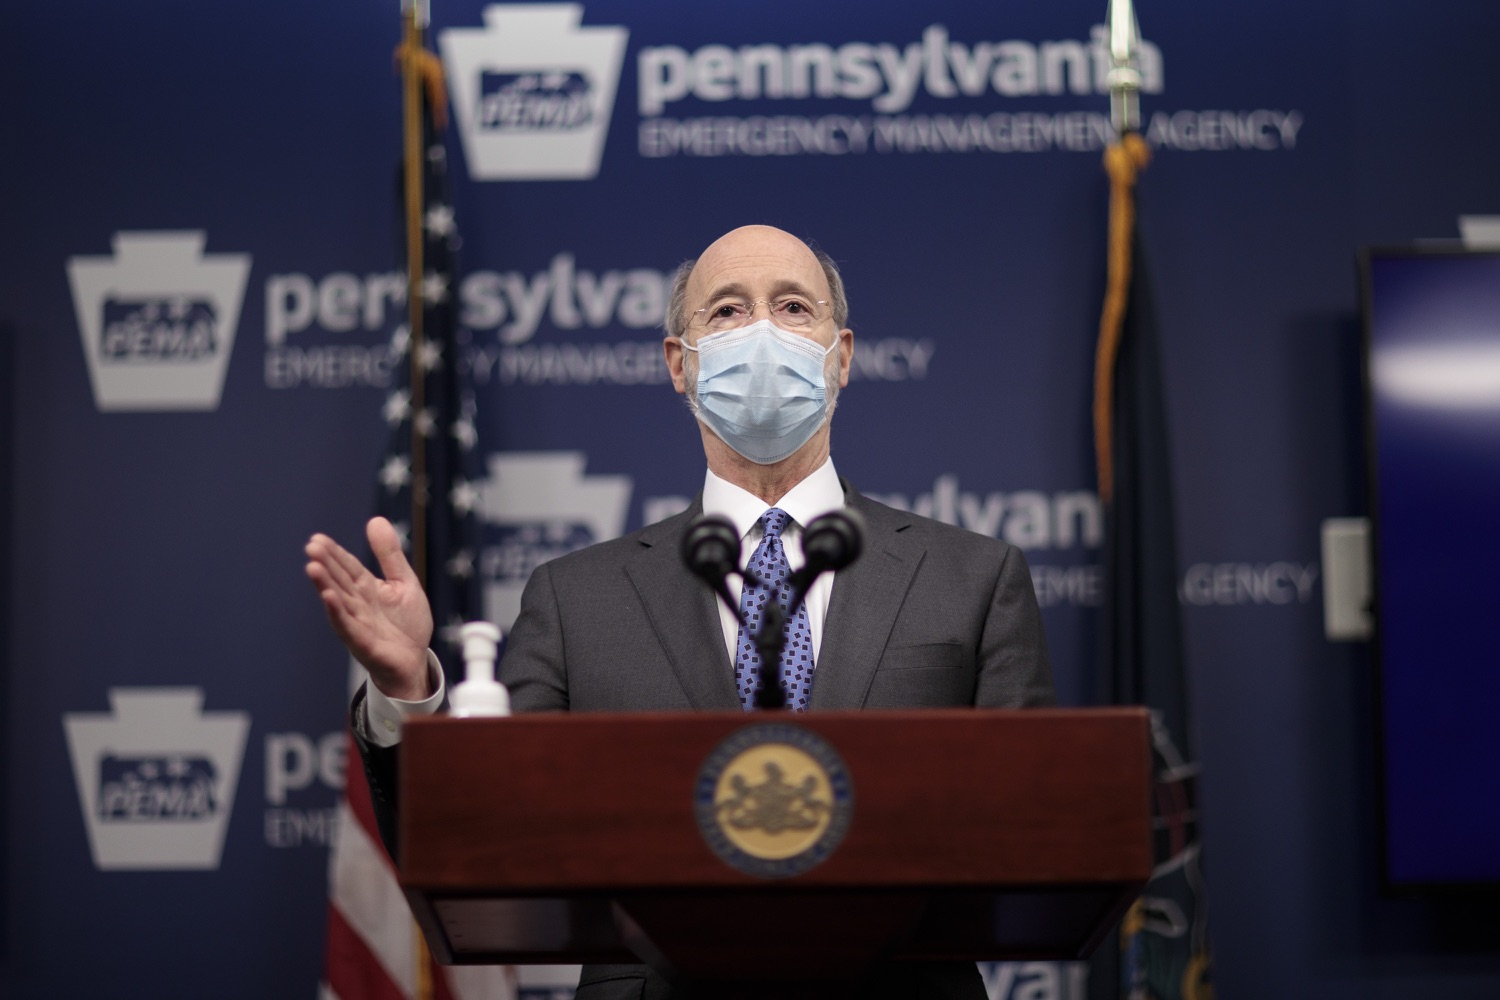 "<a href=""https://filesource.wostreaming.net/commonwealthofpa/photo/18472_gov_vaccine_dz_02.jpg"" target=""_blank"">⇣ Download Photo<br></a>Pennsylvania Governor Tom Wolf speaks at the press conference.  The commonwealths COVID-19 vaccination distribution plan was designed to be fluid and flexible to meet guidance and recommendations from the federal government. Today, Governor Tom Wolf and Secretary of Health Dr. Rachel Levine announced the fourth version of the plan, detailing the updates and how the state is working to ensure safe, swift implementation. Harrisburg, PA  January 8, 2021"